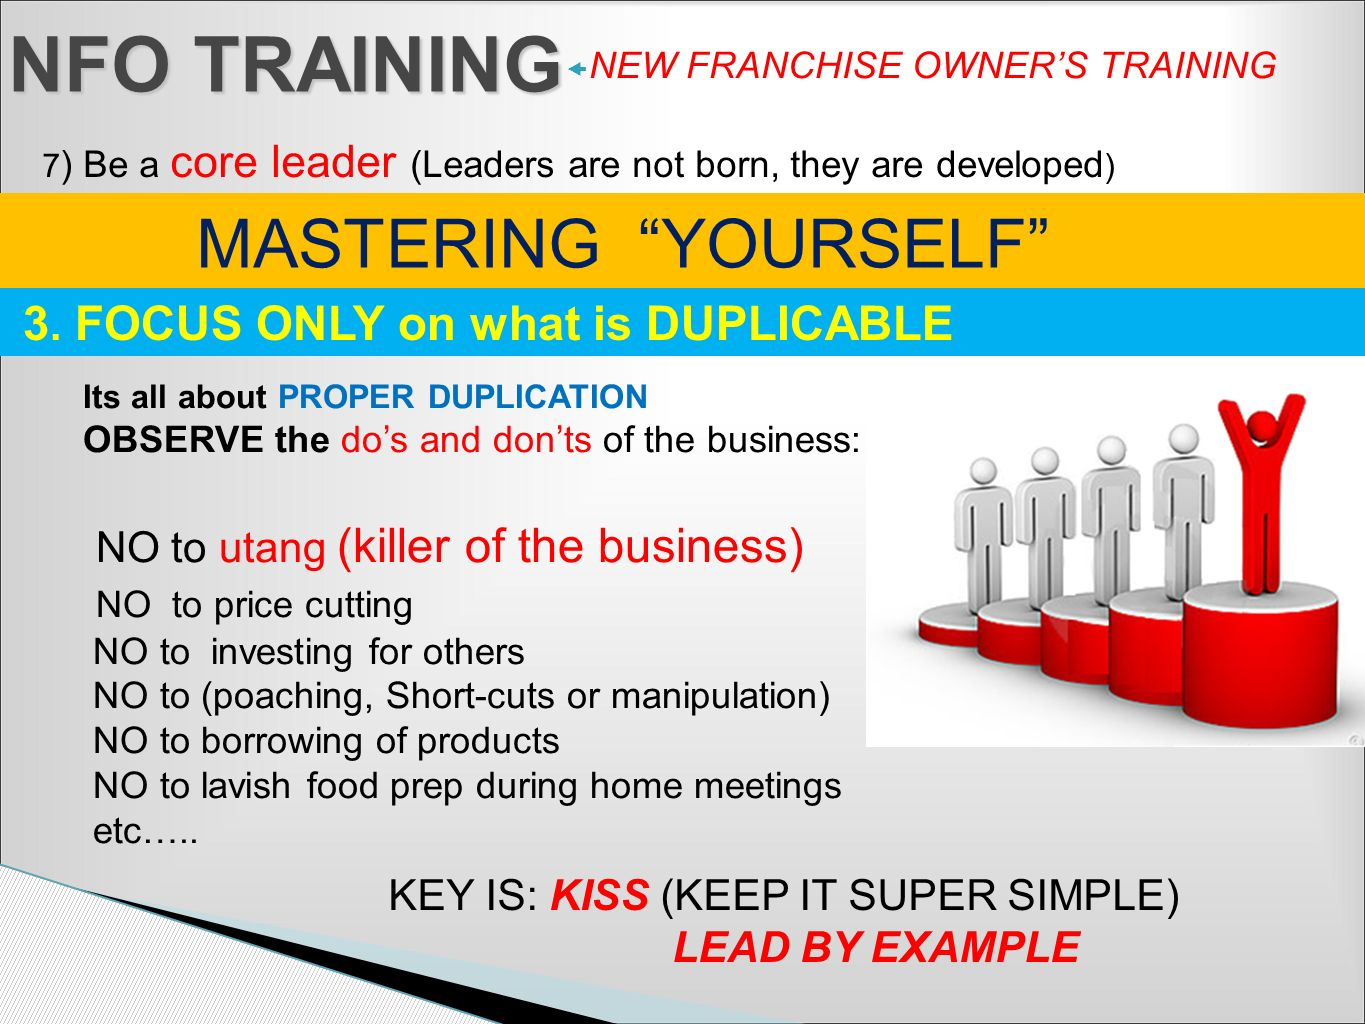 NFO TRAINING MASTERING YOURSELF 3. FOCUS ONLY on what is DUPLICABLE